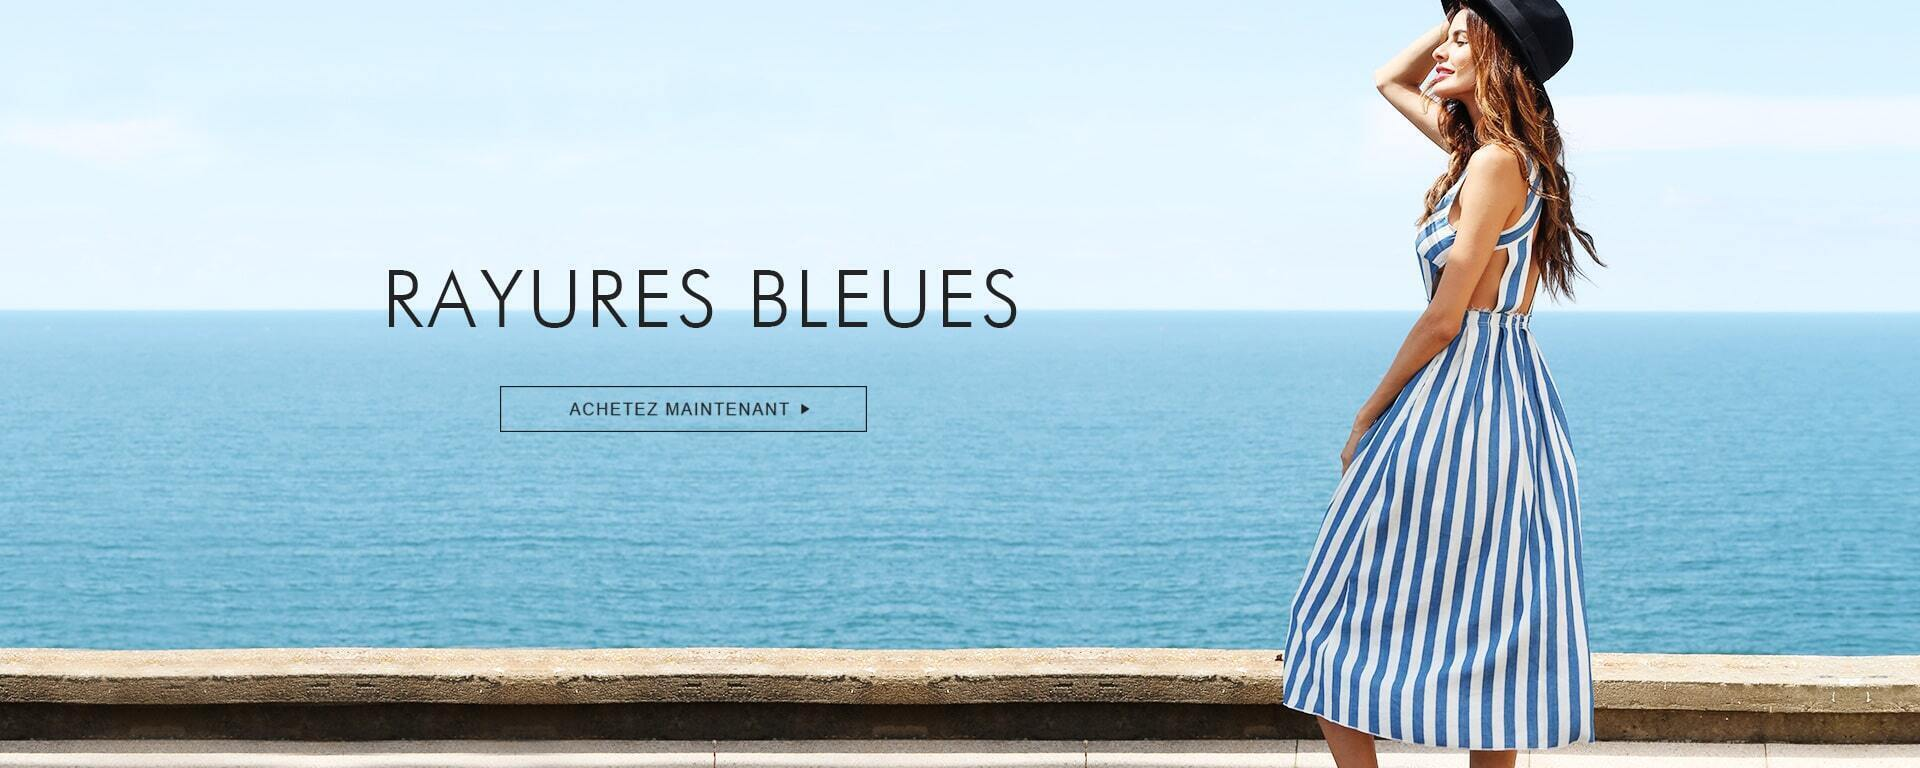 RAYURES BLEUES